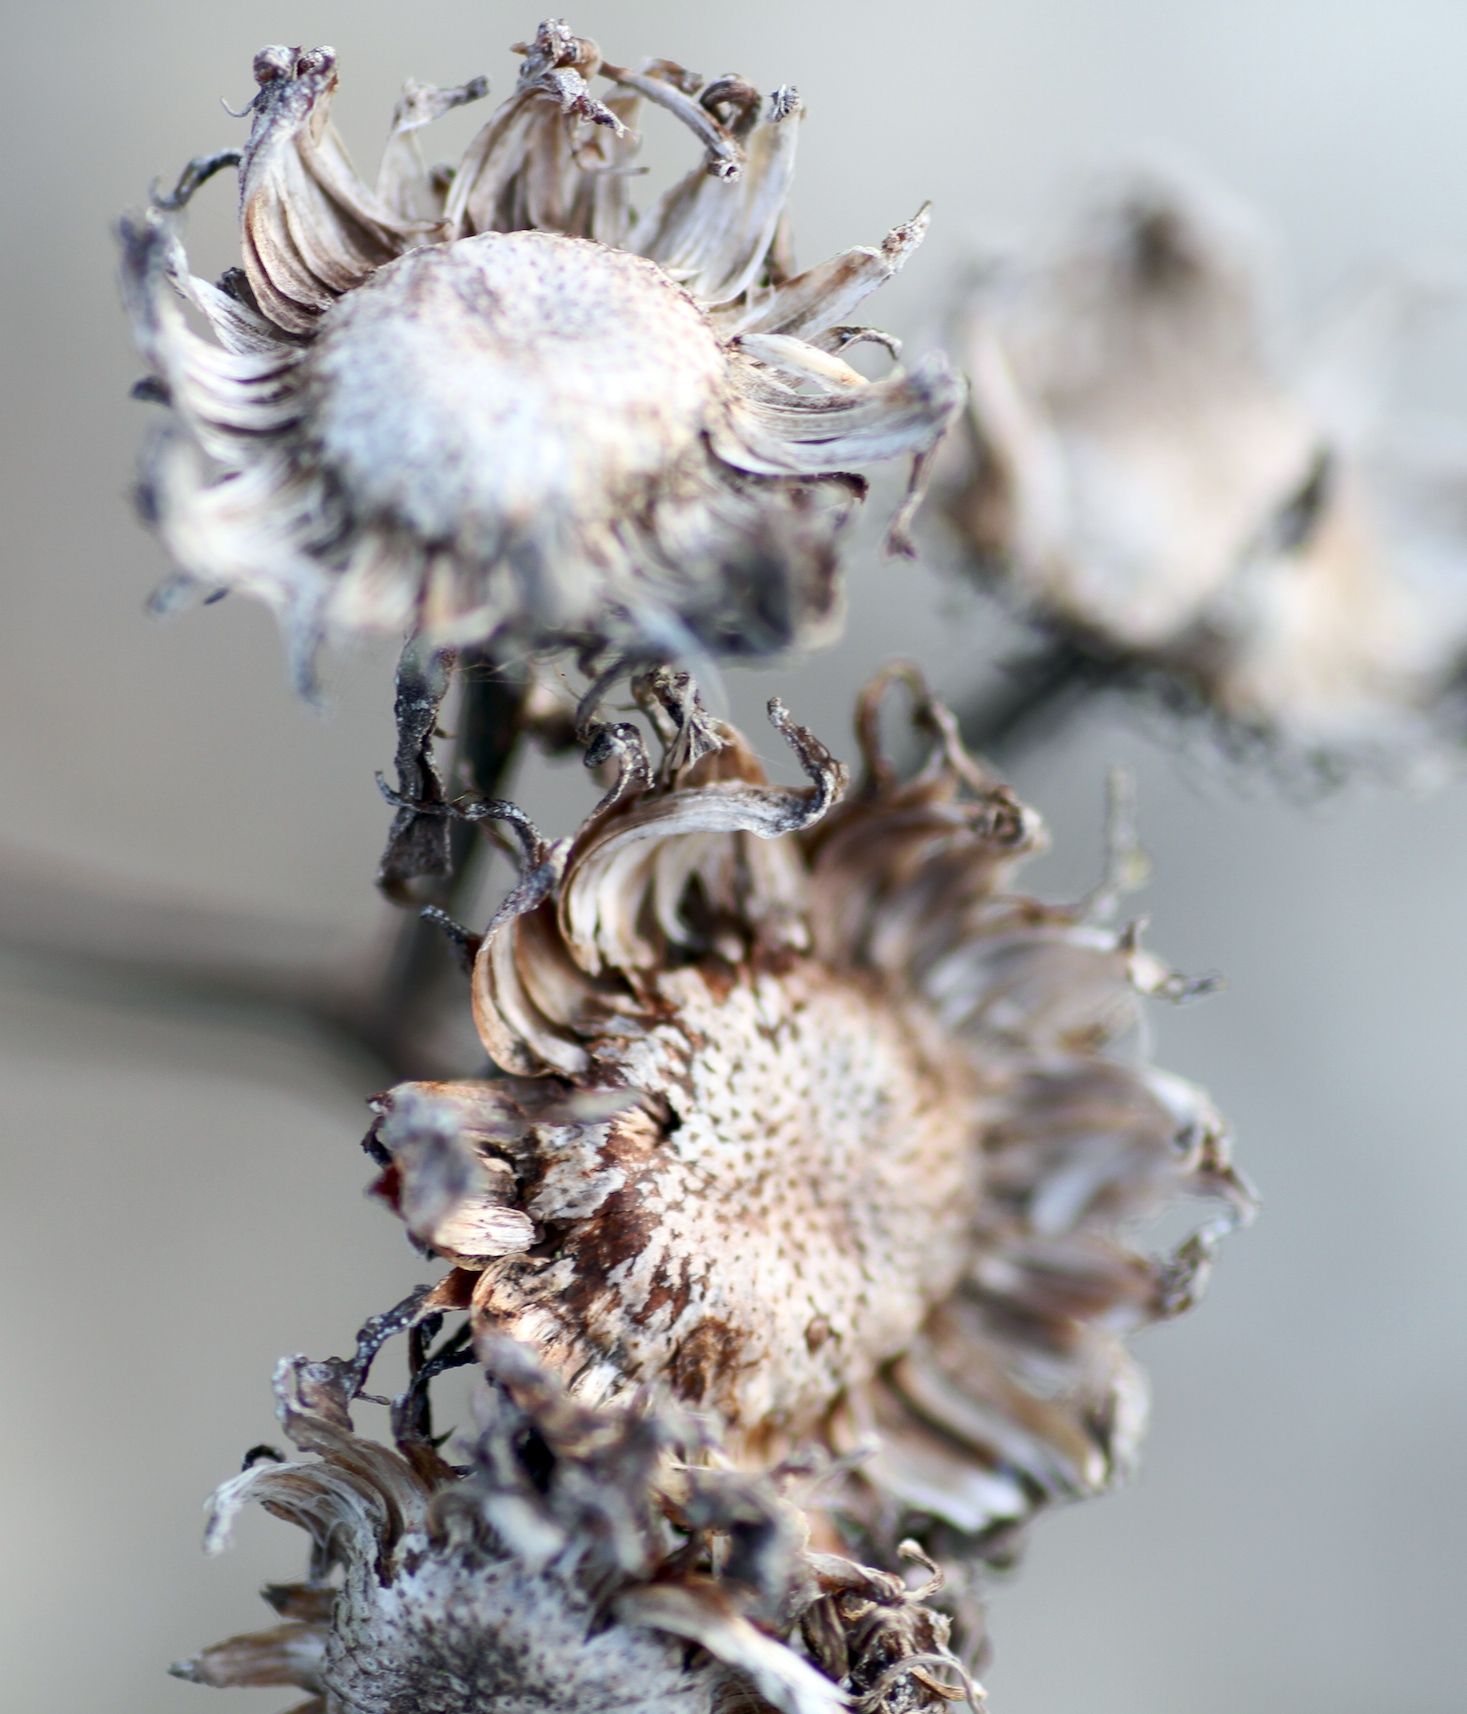 Winter's flowerheads